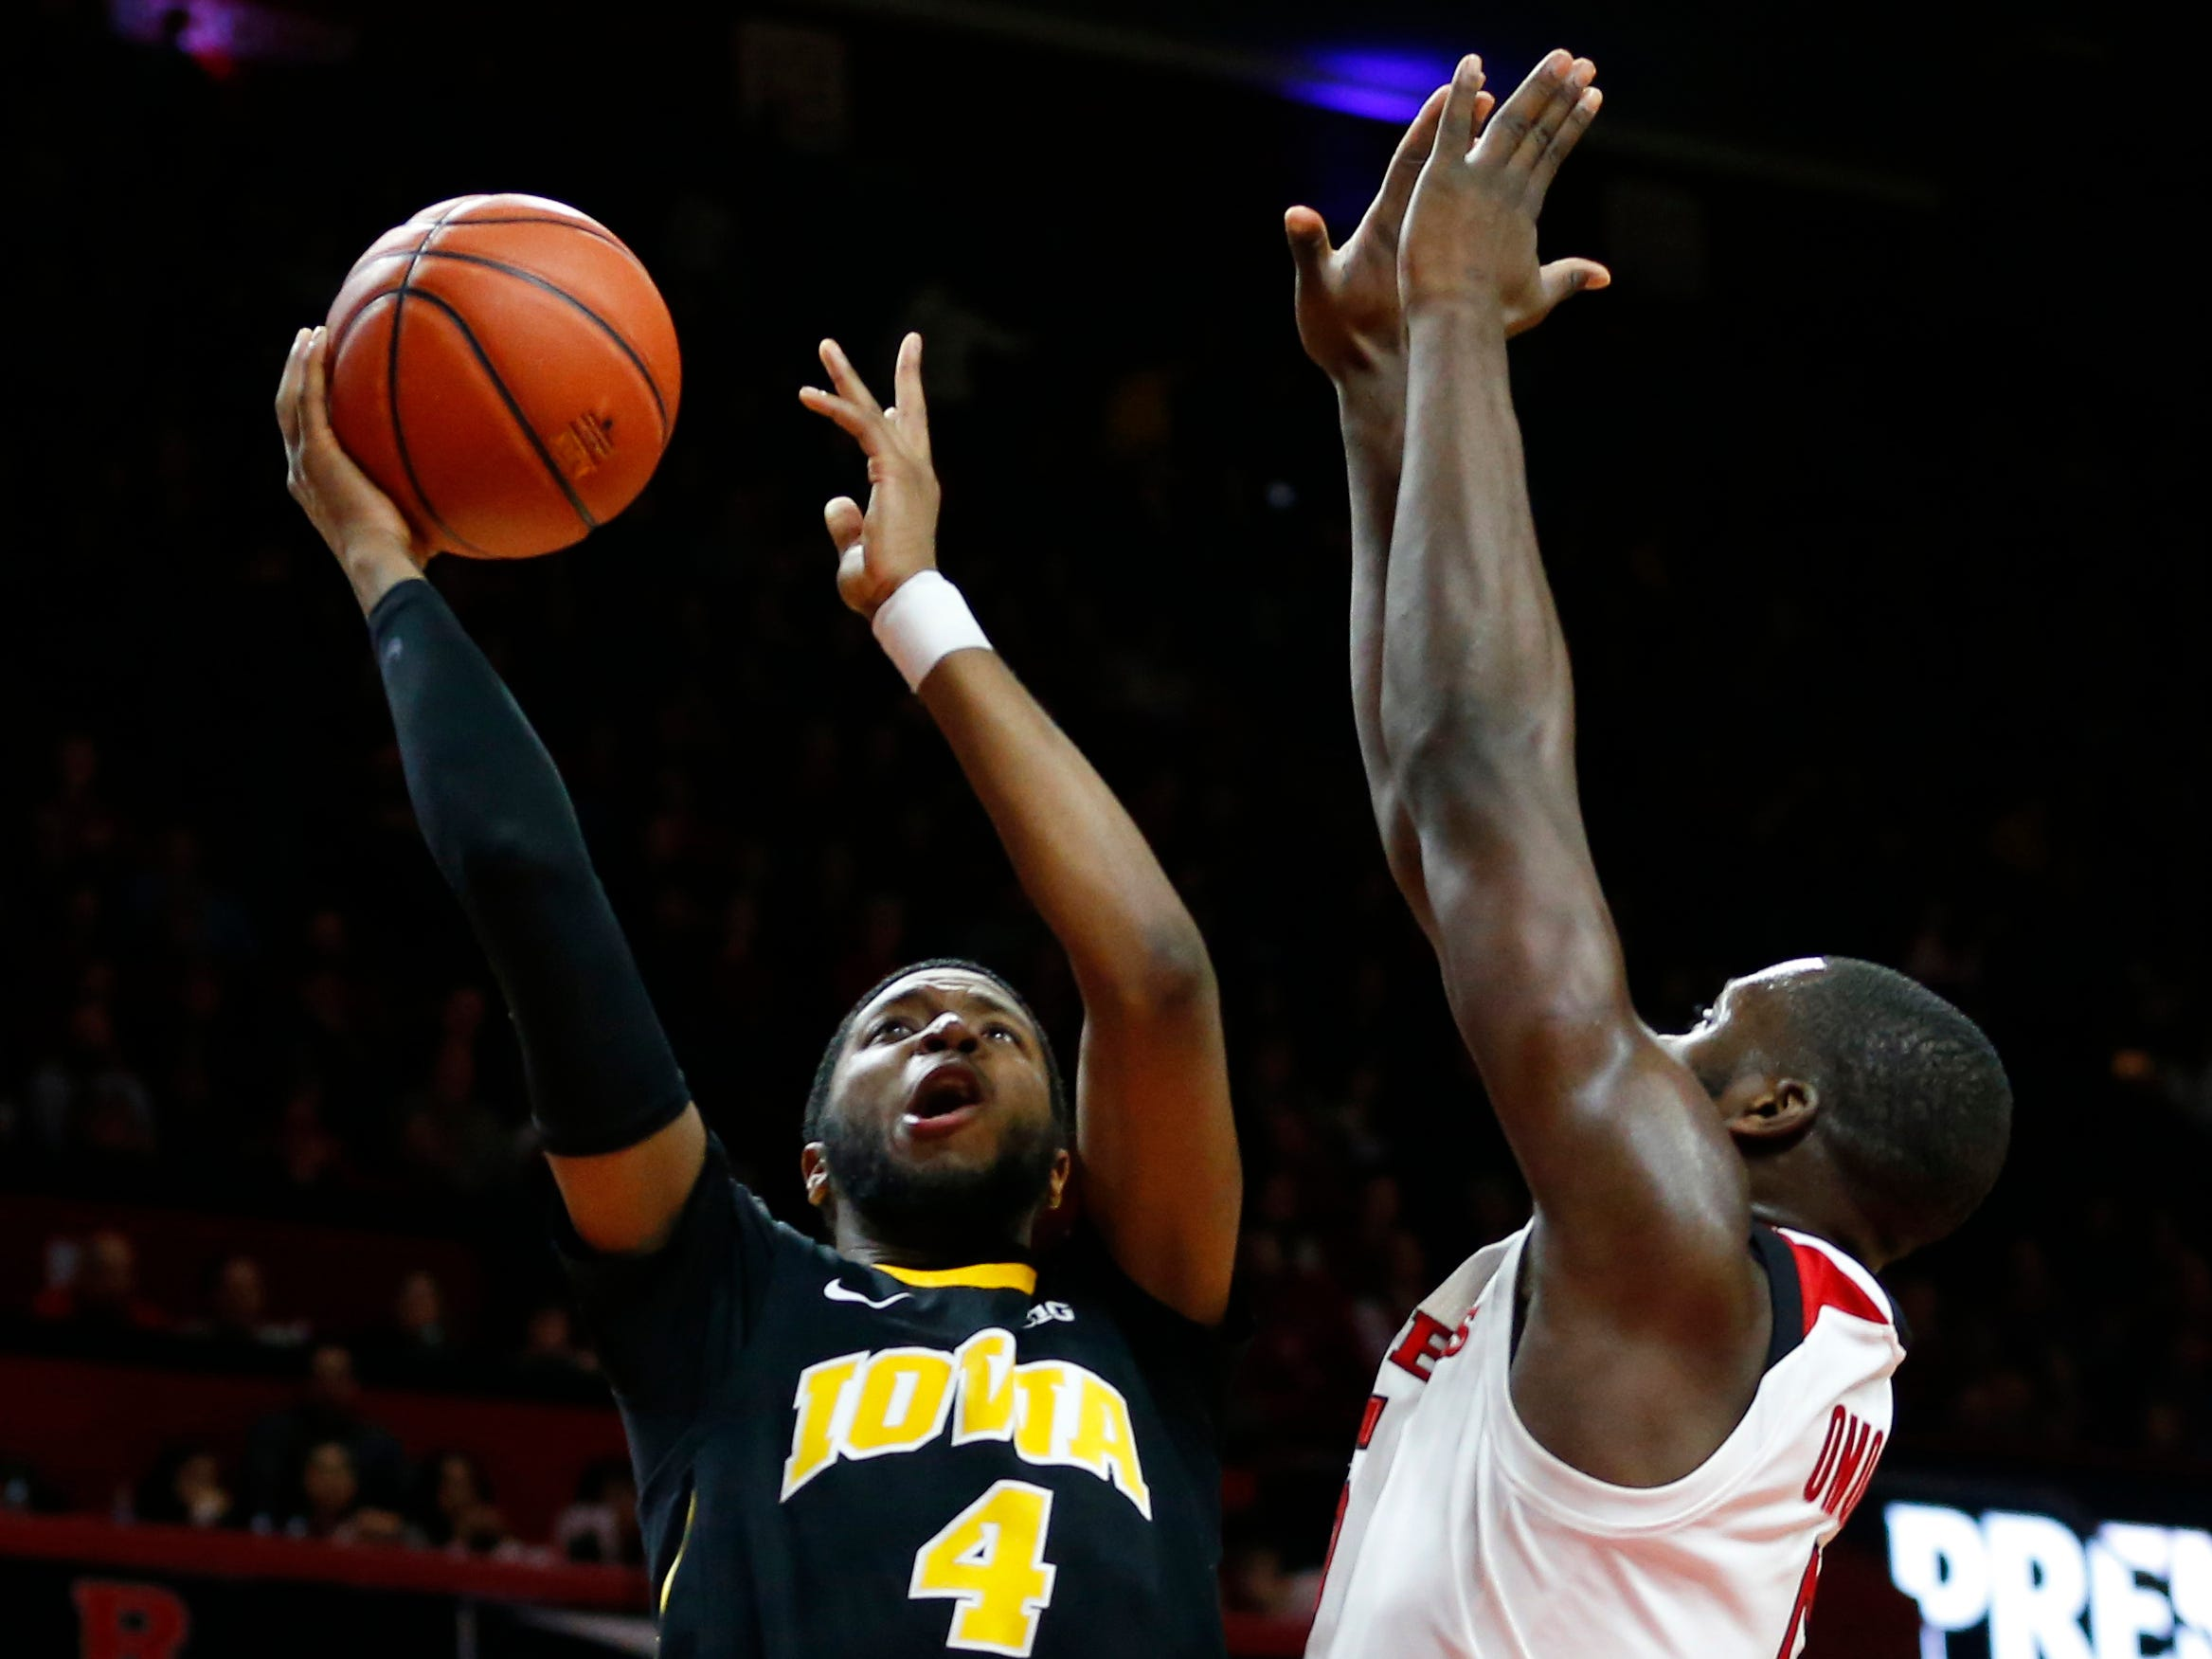 Iowa Hawkeyes guard Isaiah Moss (4) goes to the basket against Rutgers Scarlet Knights forward Eugene Omoruyi (5) during the first half at Rutgers Athletic Center (RAC). Mandatory Credit: Noah K. Murray-USA TODAY Sports